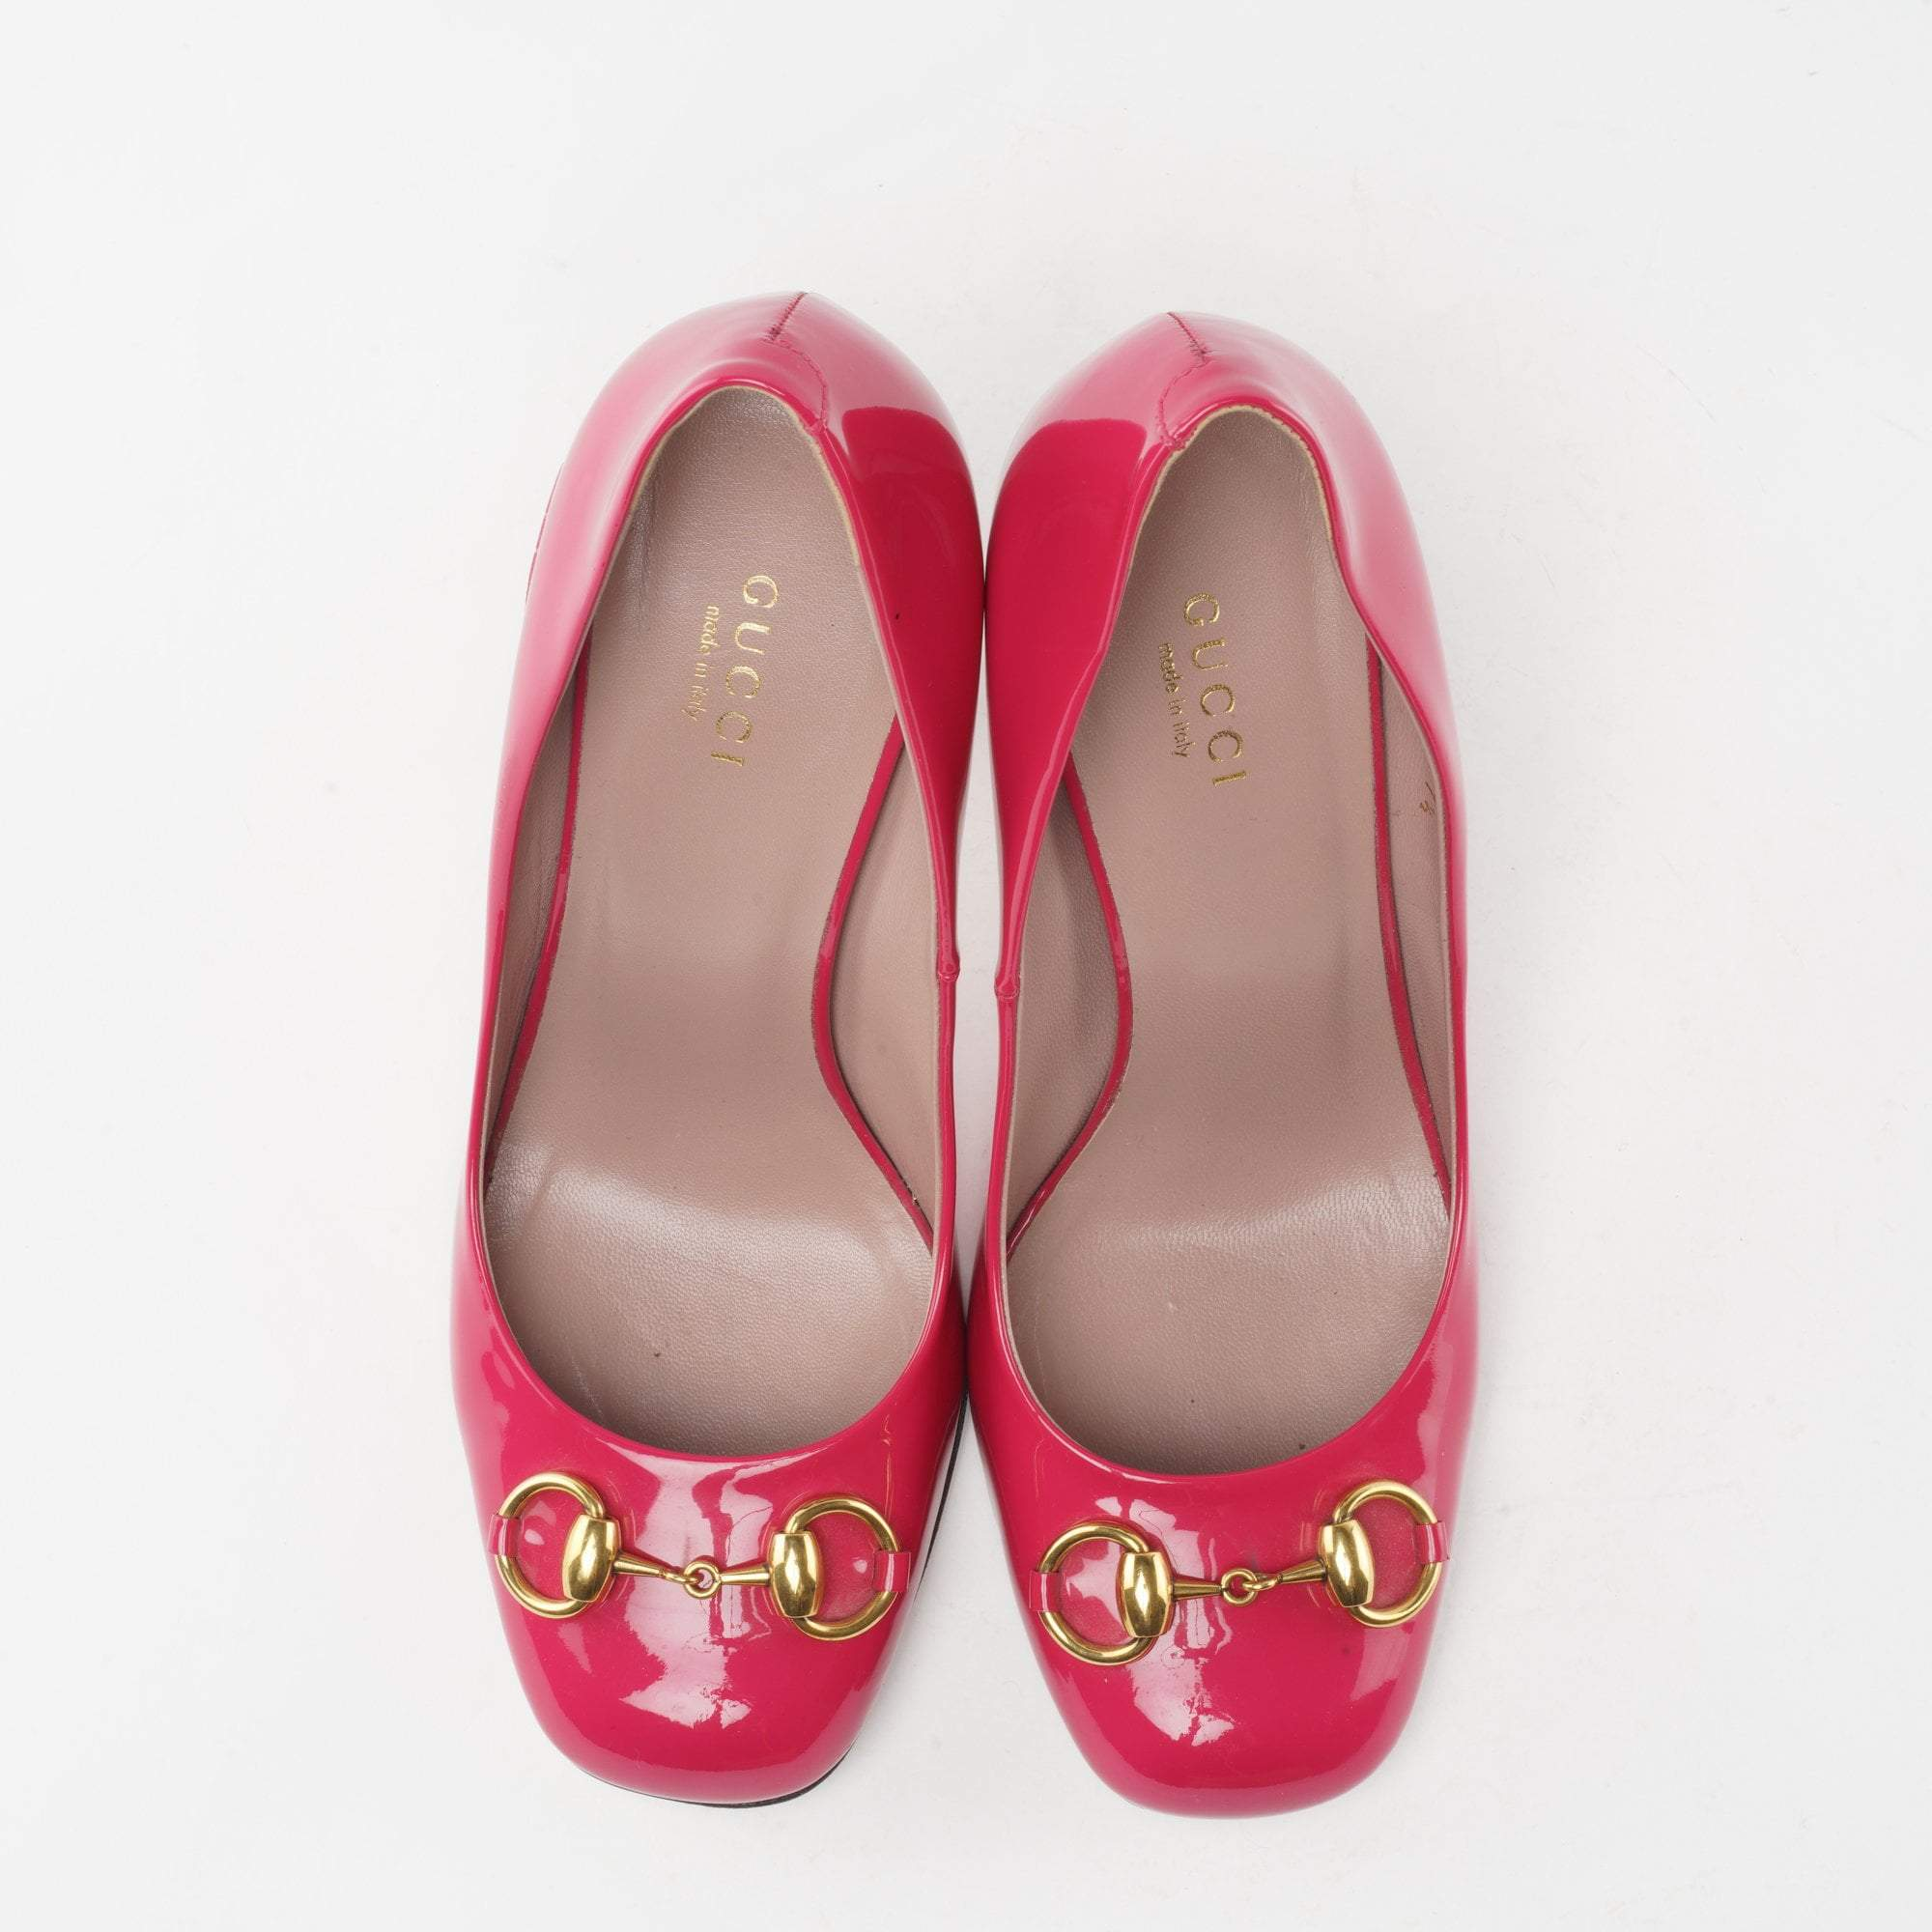 Gucci Pink Patent Leather Horsebit Pumps